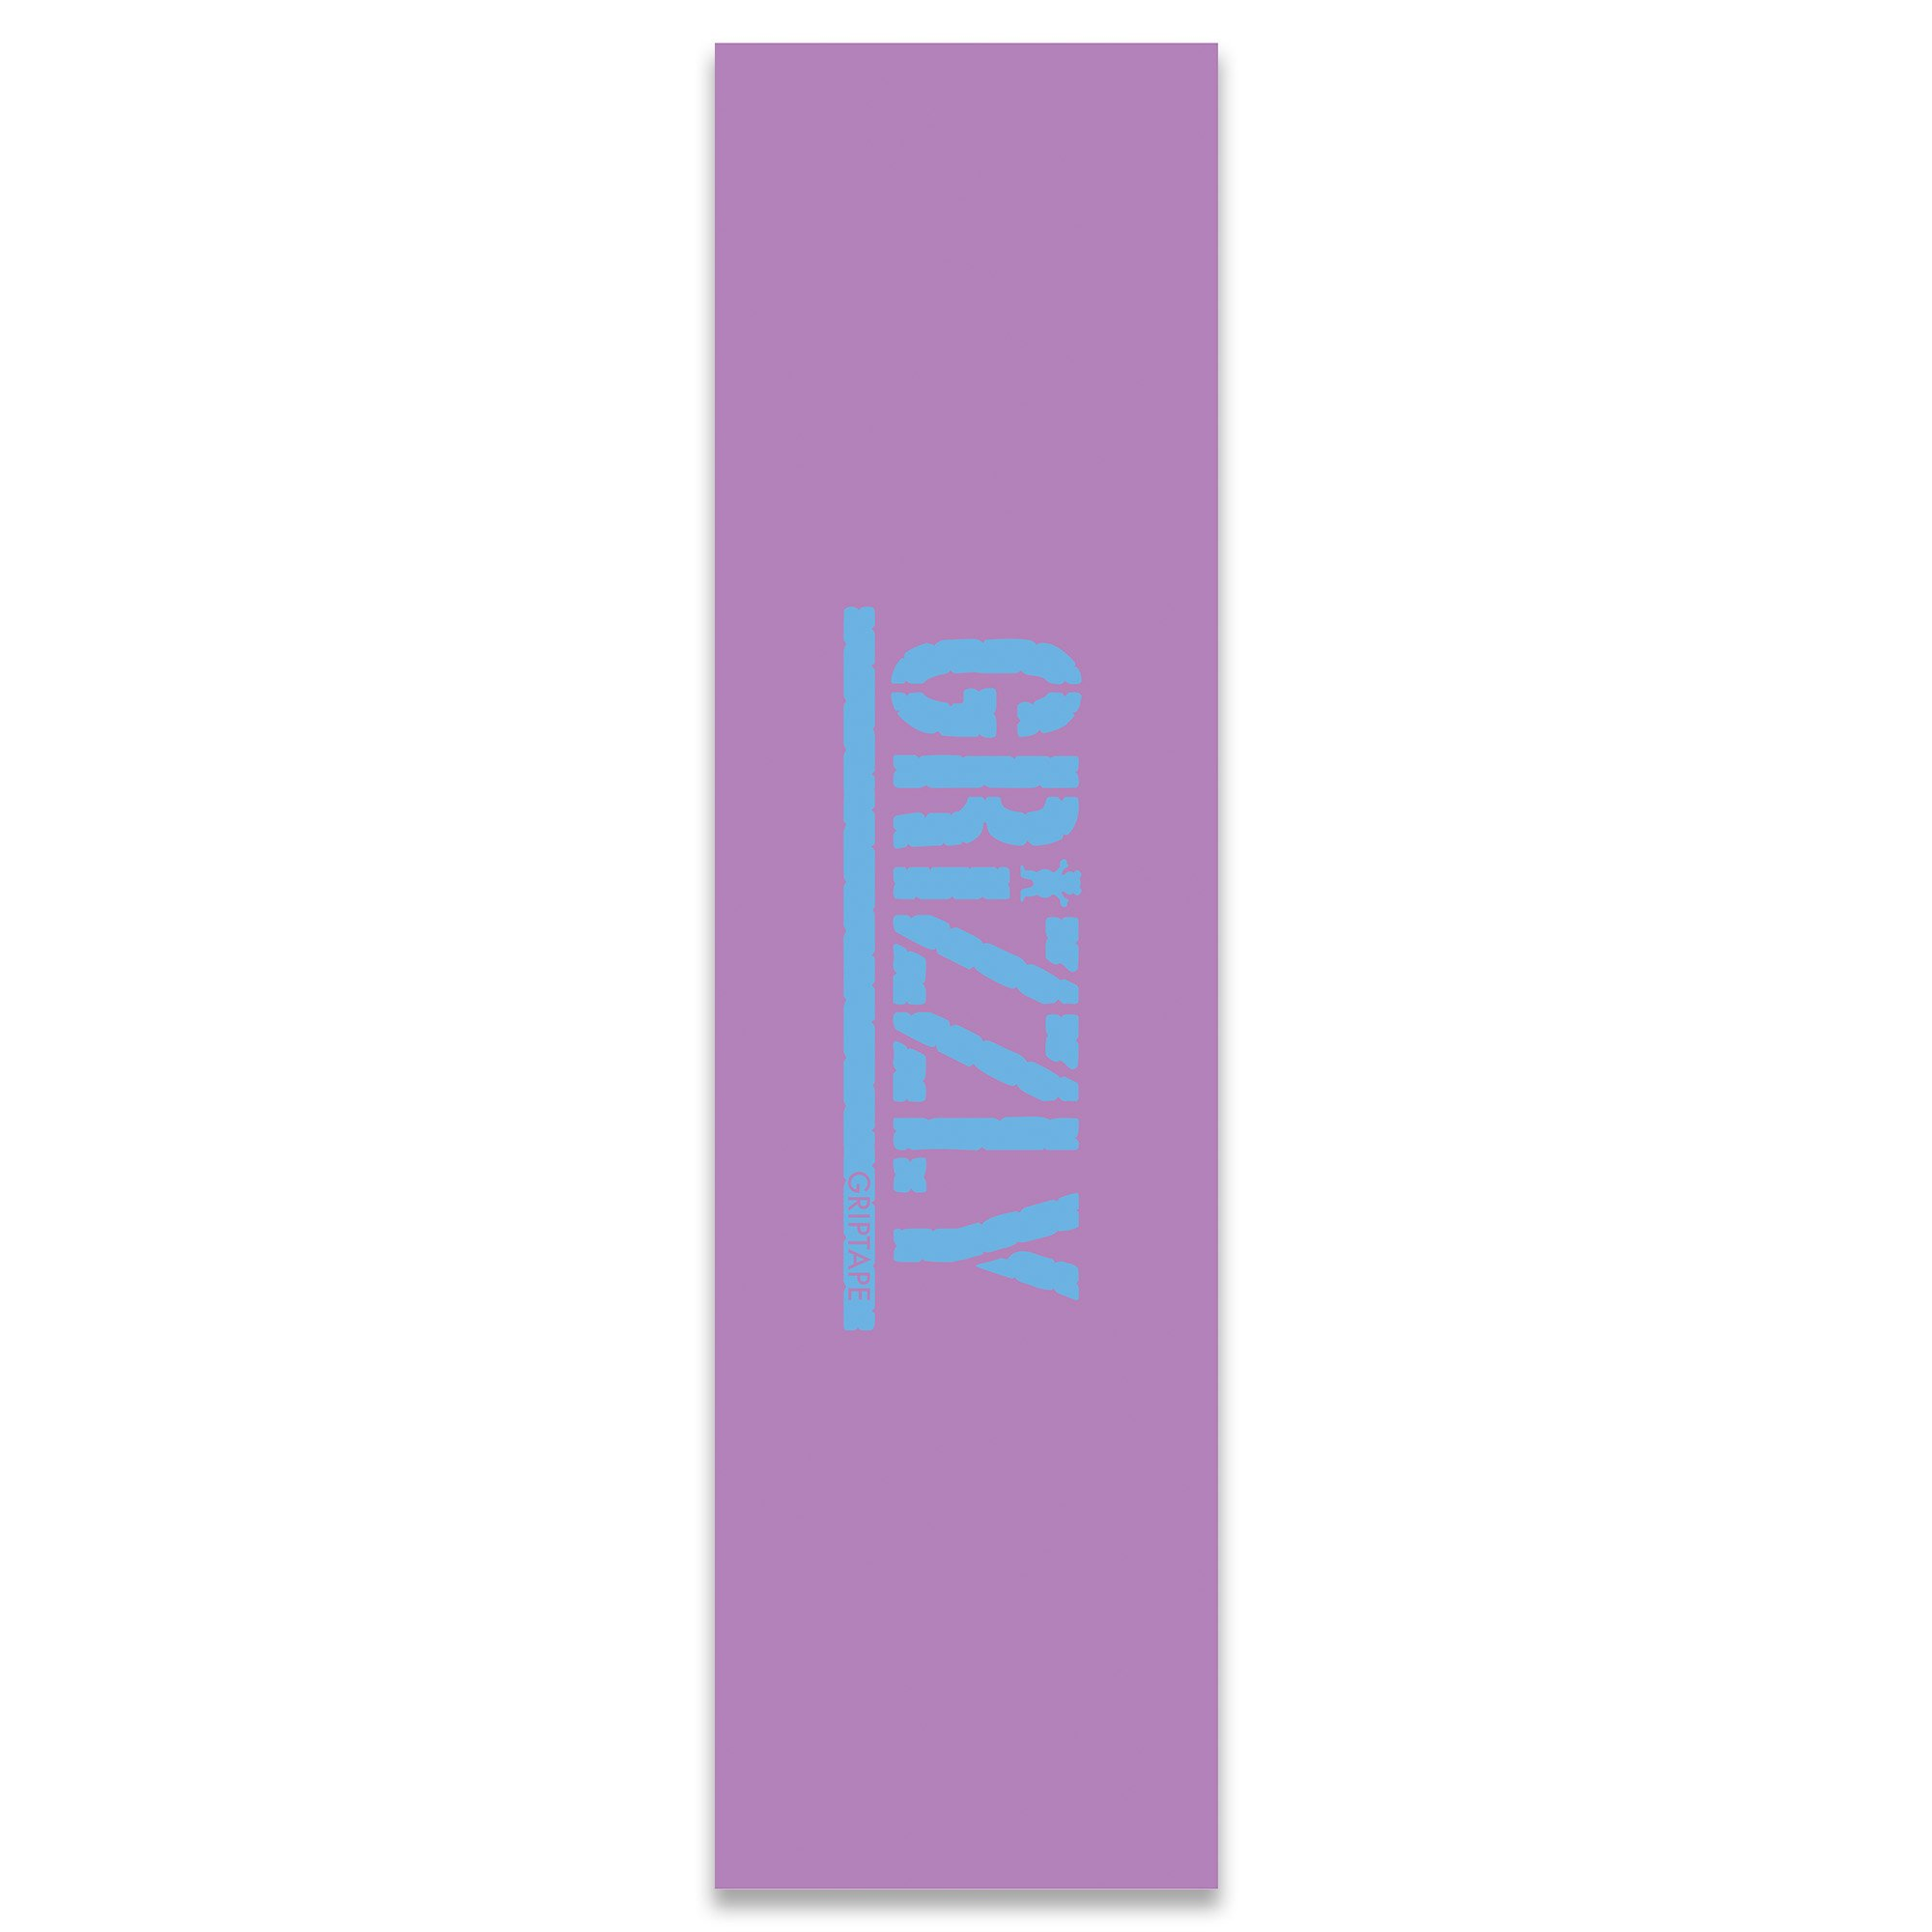 GRZ GRIP REVERSE STAMP LAV SHT - Click to enlarge